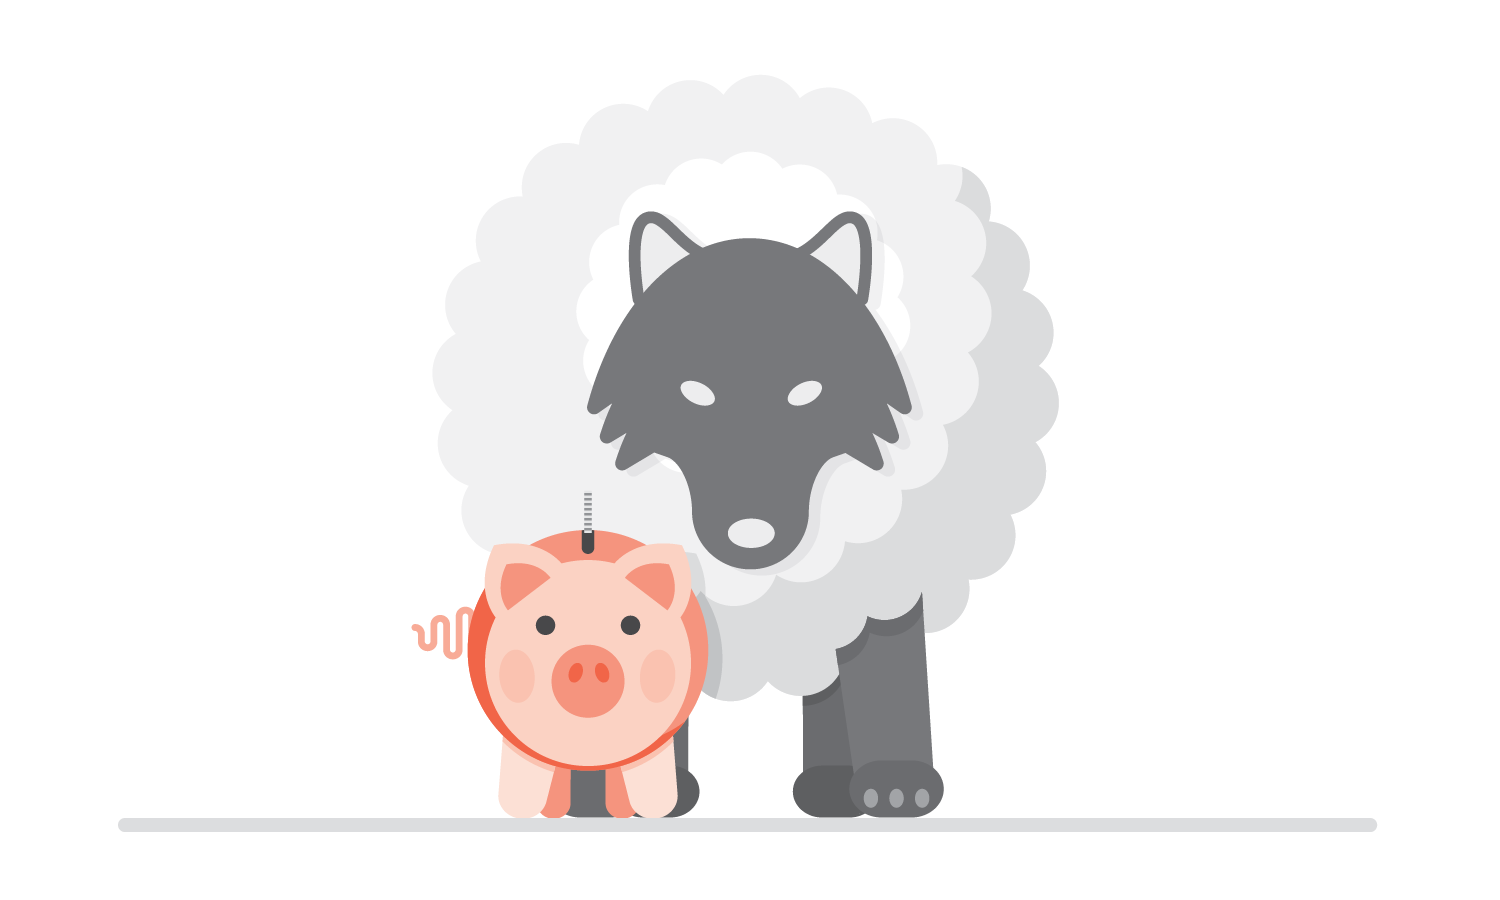 Wolf in a cloud behind a piggy bank